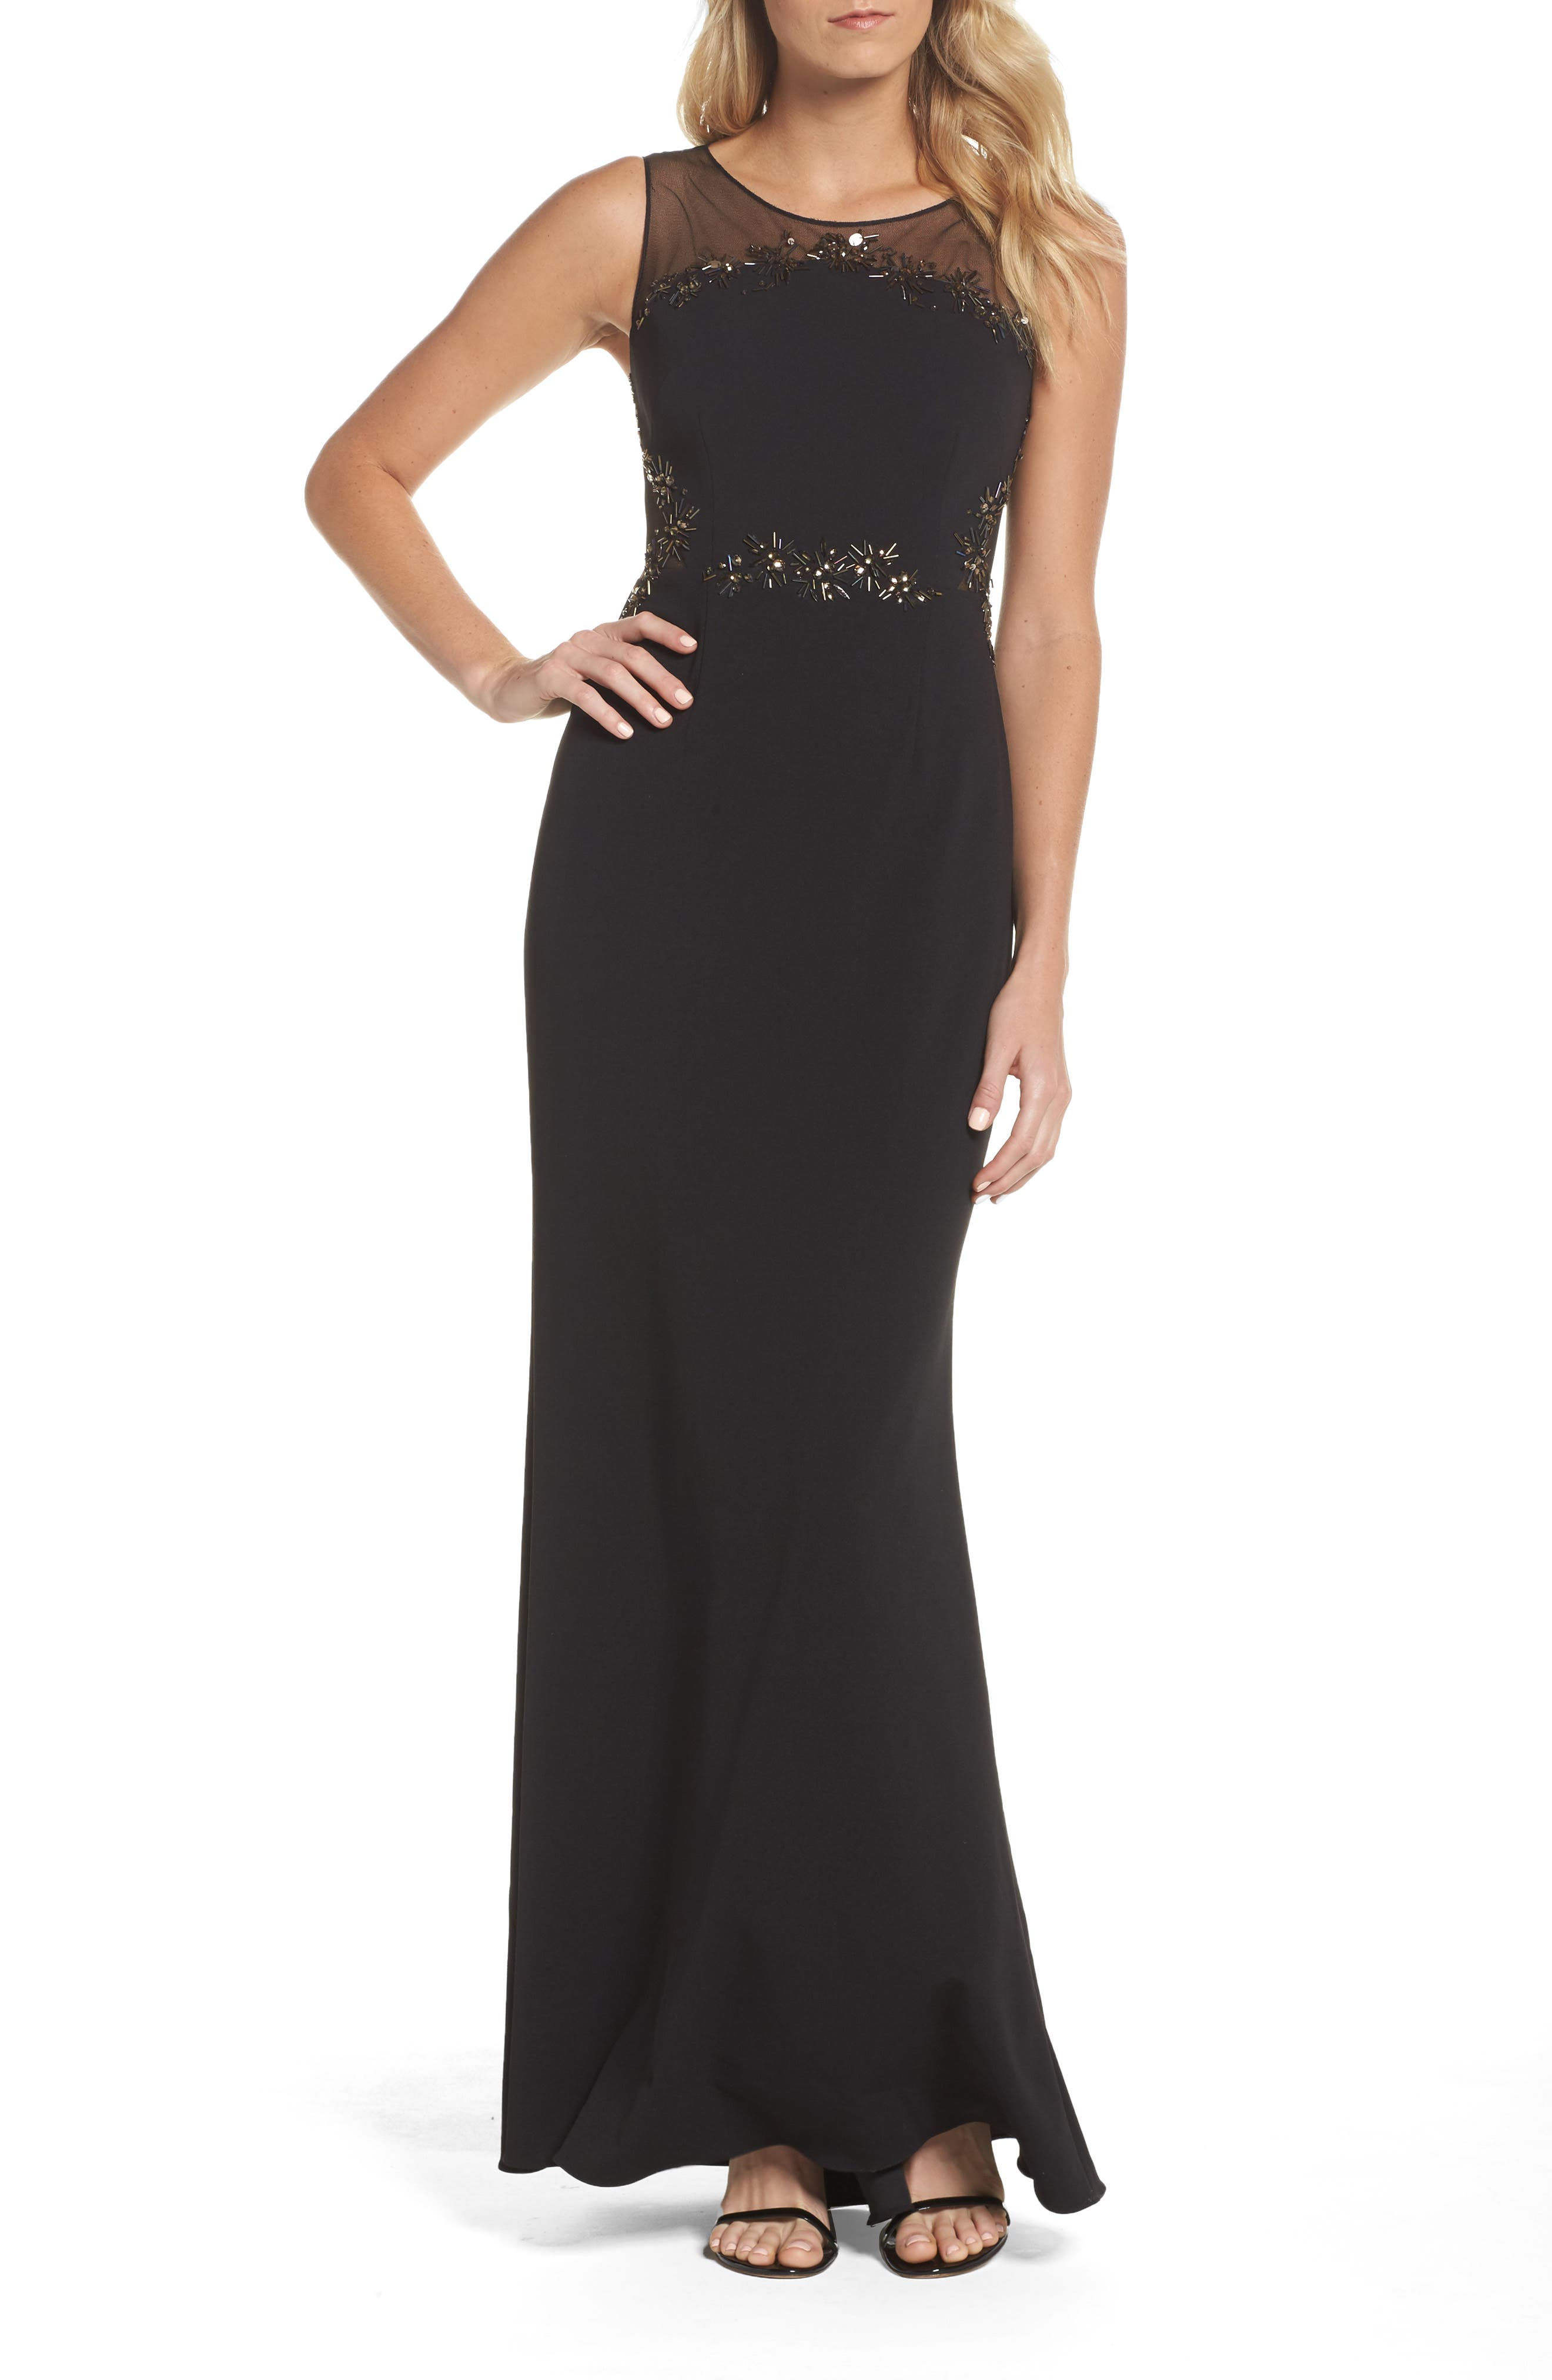 Main Image - Adrianna Papell Embellished Knit Crepe Gown